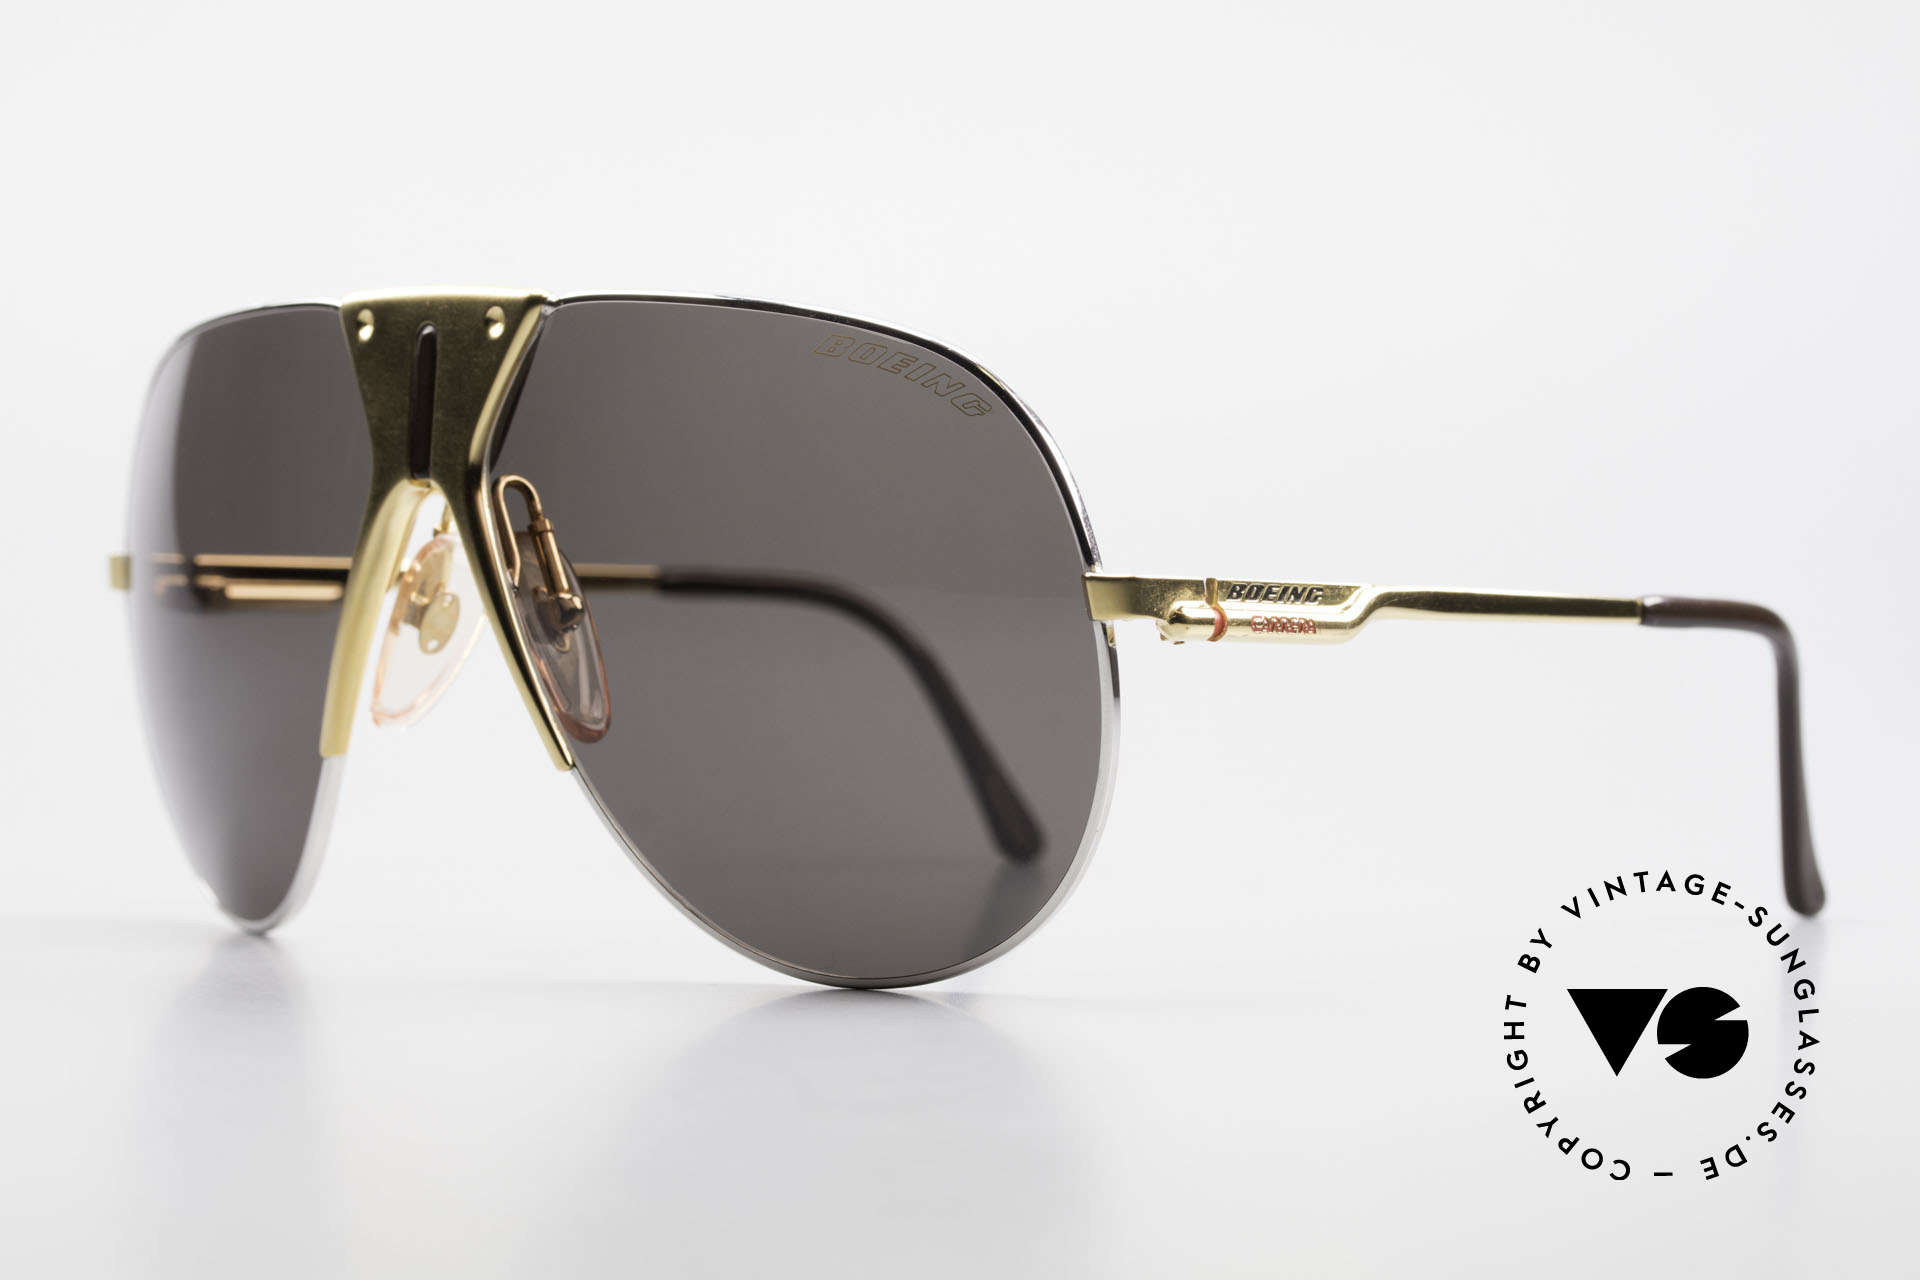 Boeing 5701 Famous 80's Pilots Shades, made by Carrera only for the BOEING pilots needs, Made for Men and Women